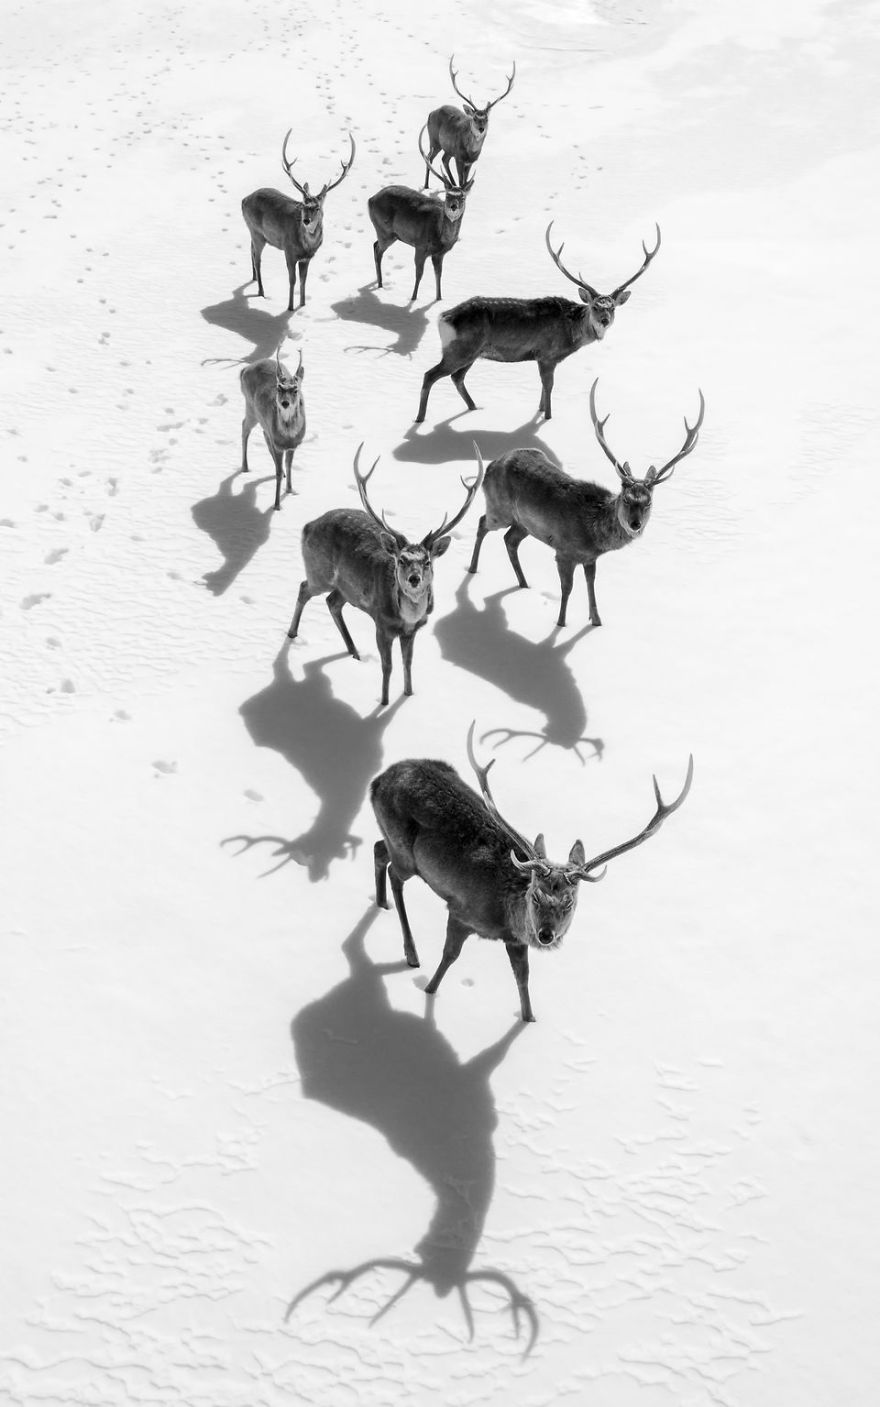 These 8 stags were wandering on the huge snowy field in Hokkaido Japan. When my drone was aproching them, they stopped wandering and then looked up to the unfamiliar flying object with their curiosities. I like 8 stags' arrangement, silhouettes and shadows. (Photo And Caption By Hidetoshi Kikuchi / National Geographic Travel Photographer Of The Year Contest)